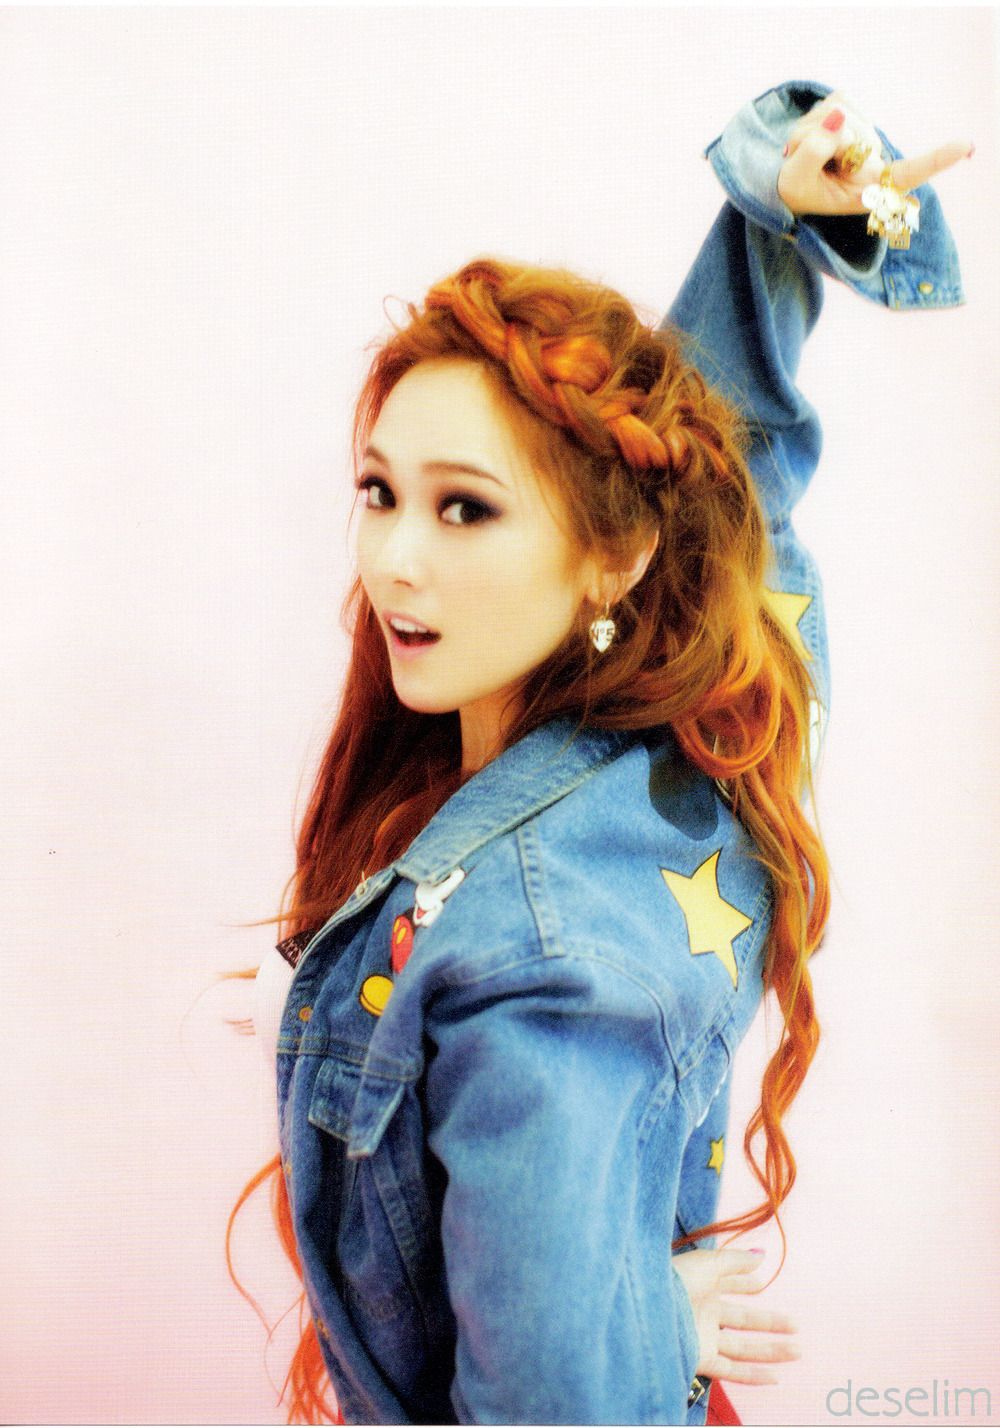 Hairstyle Snsd ideas a la jessica pictures